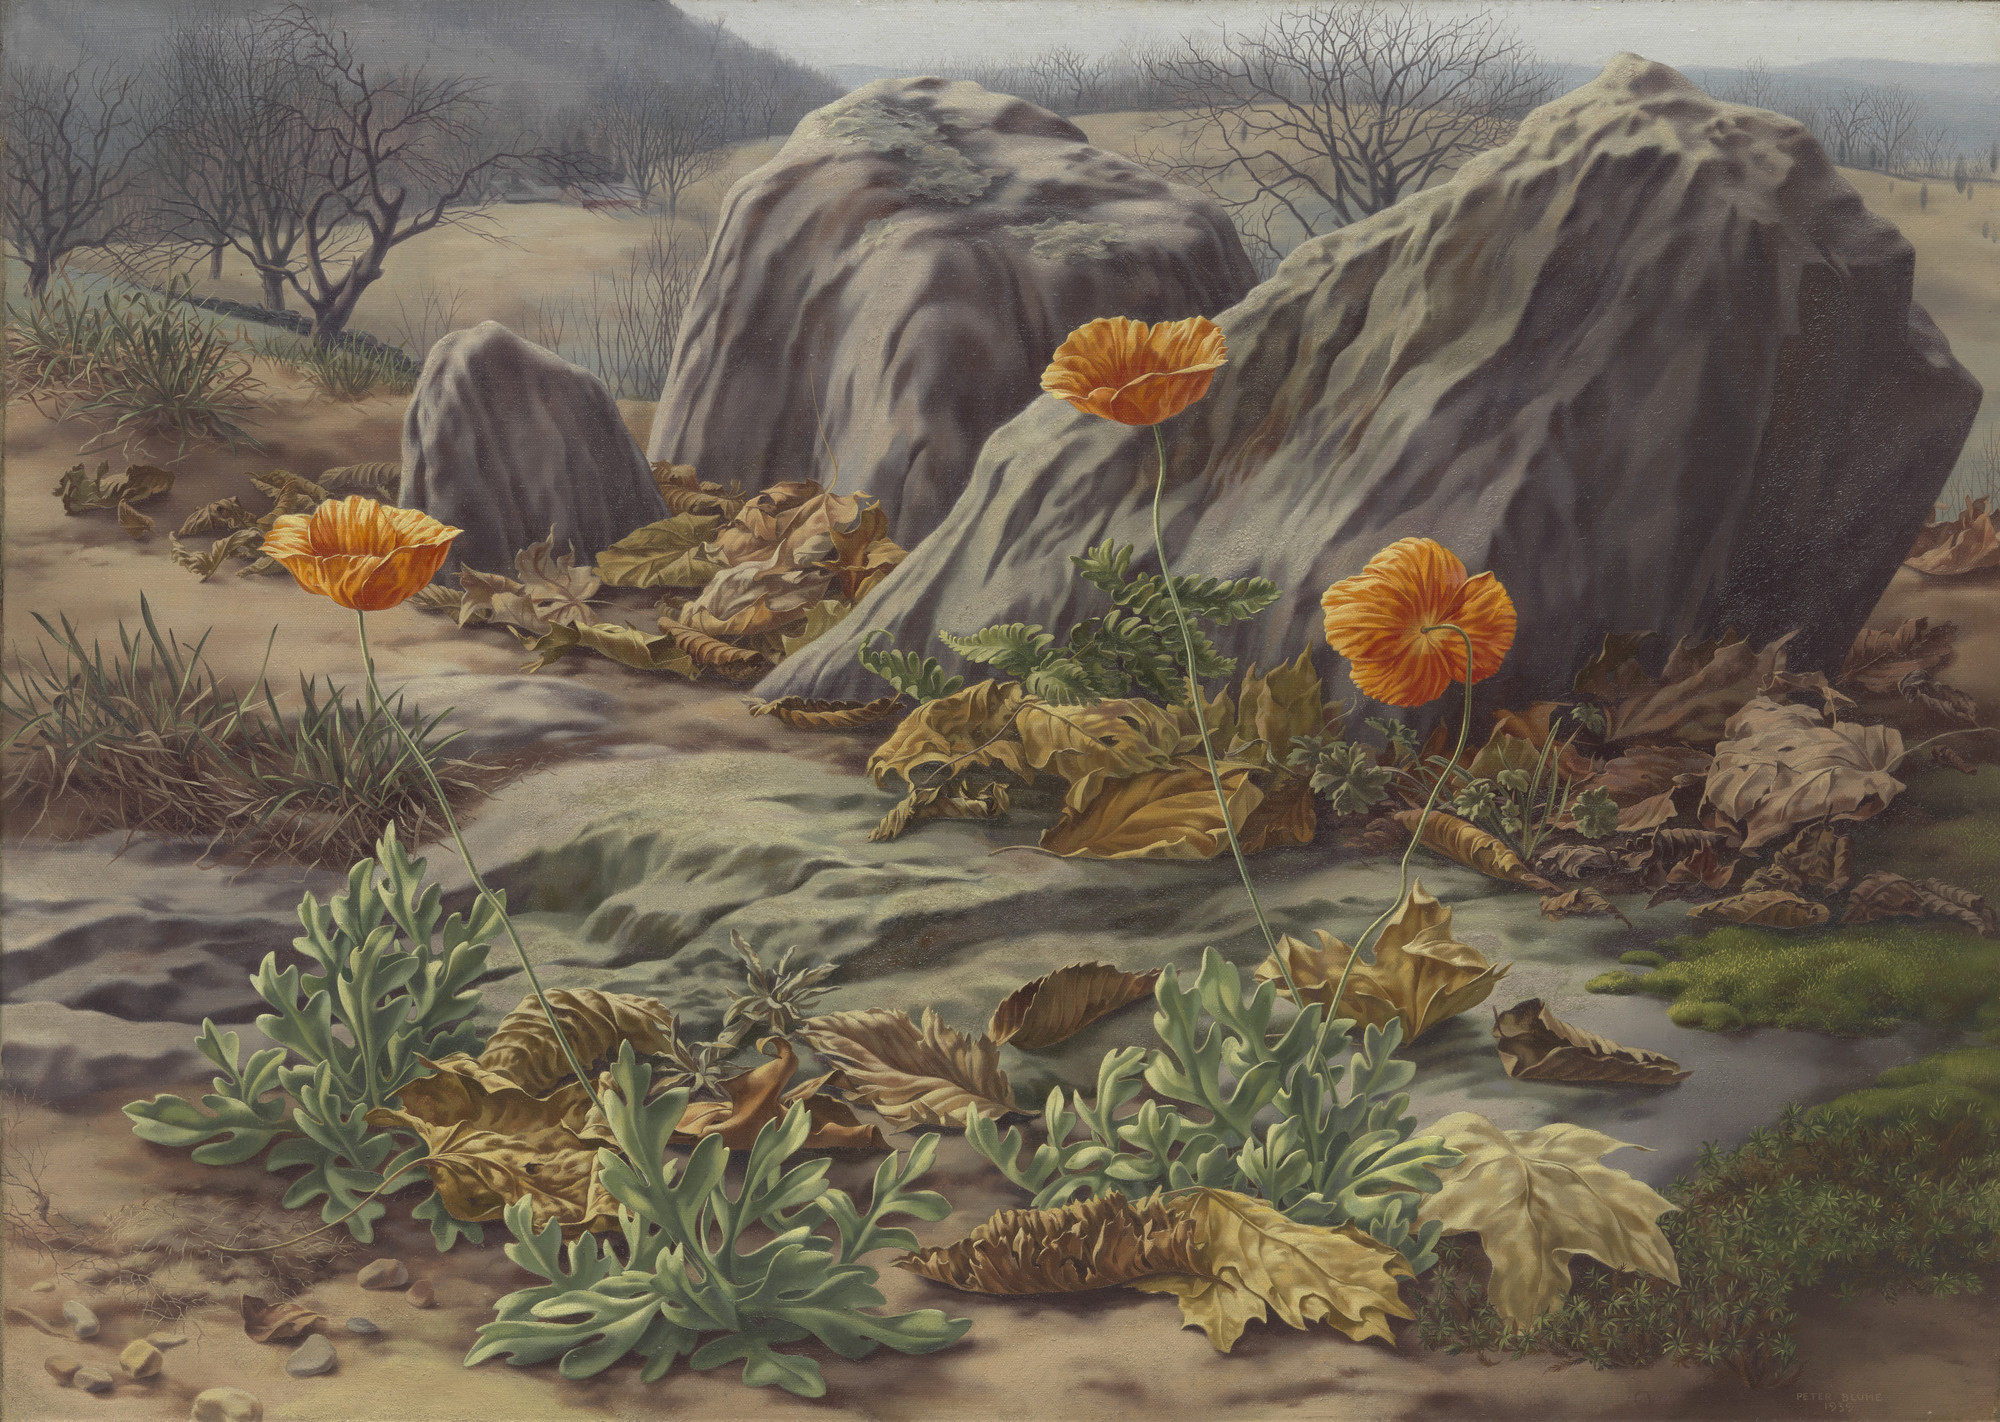 Peter Blume. Landscape with Poppies. 1939